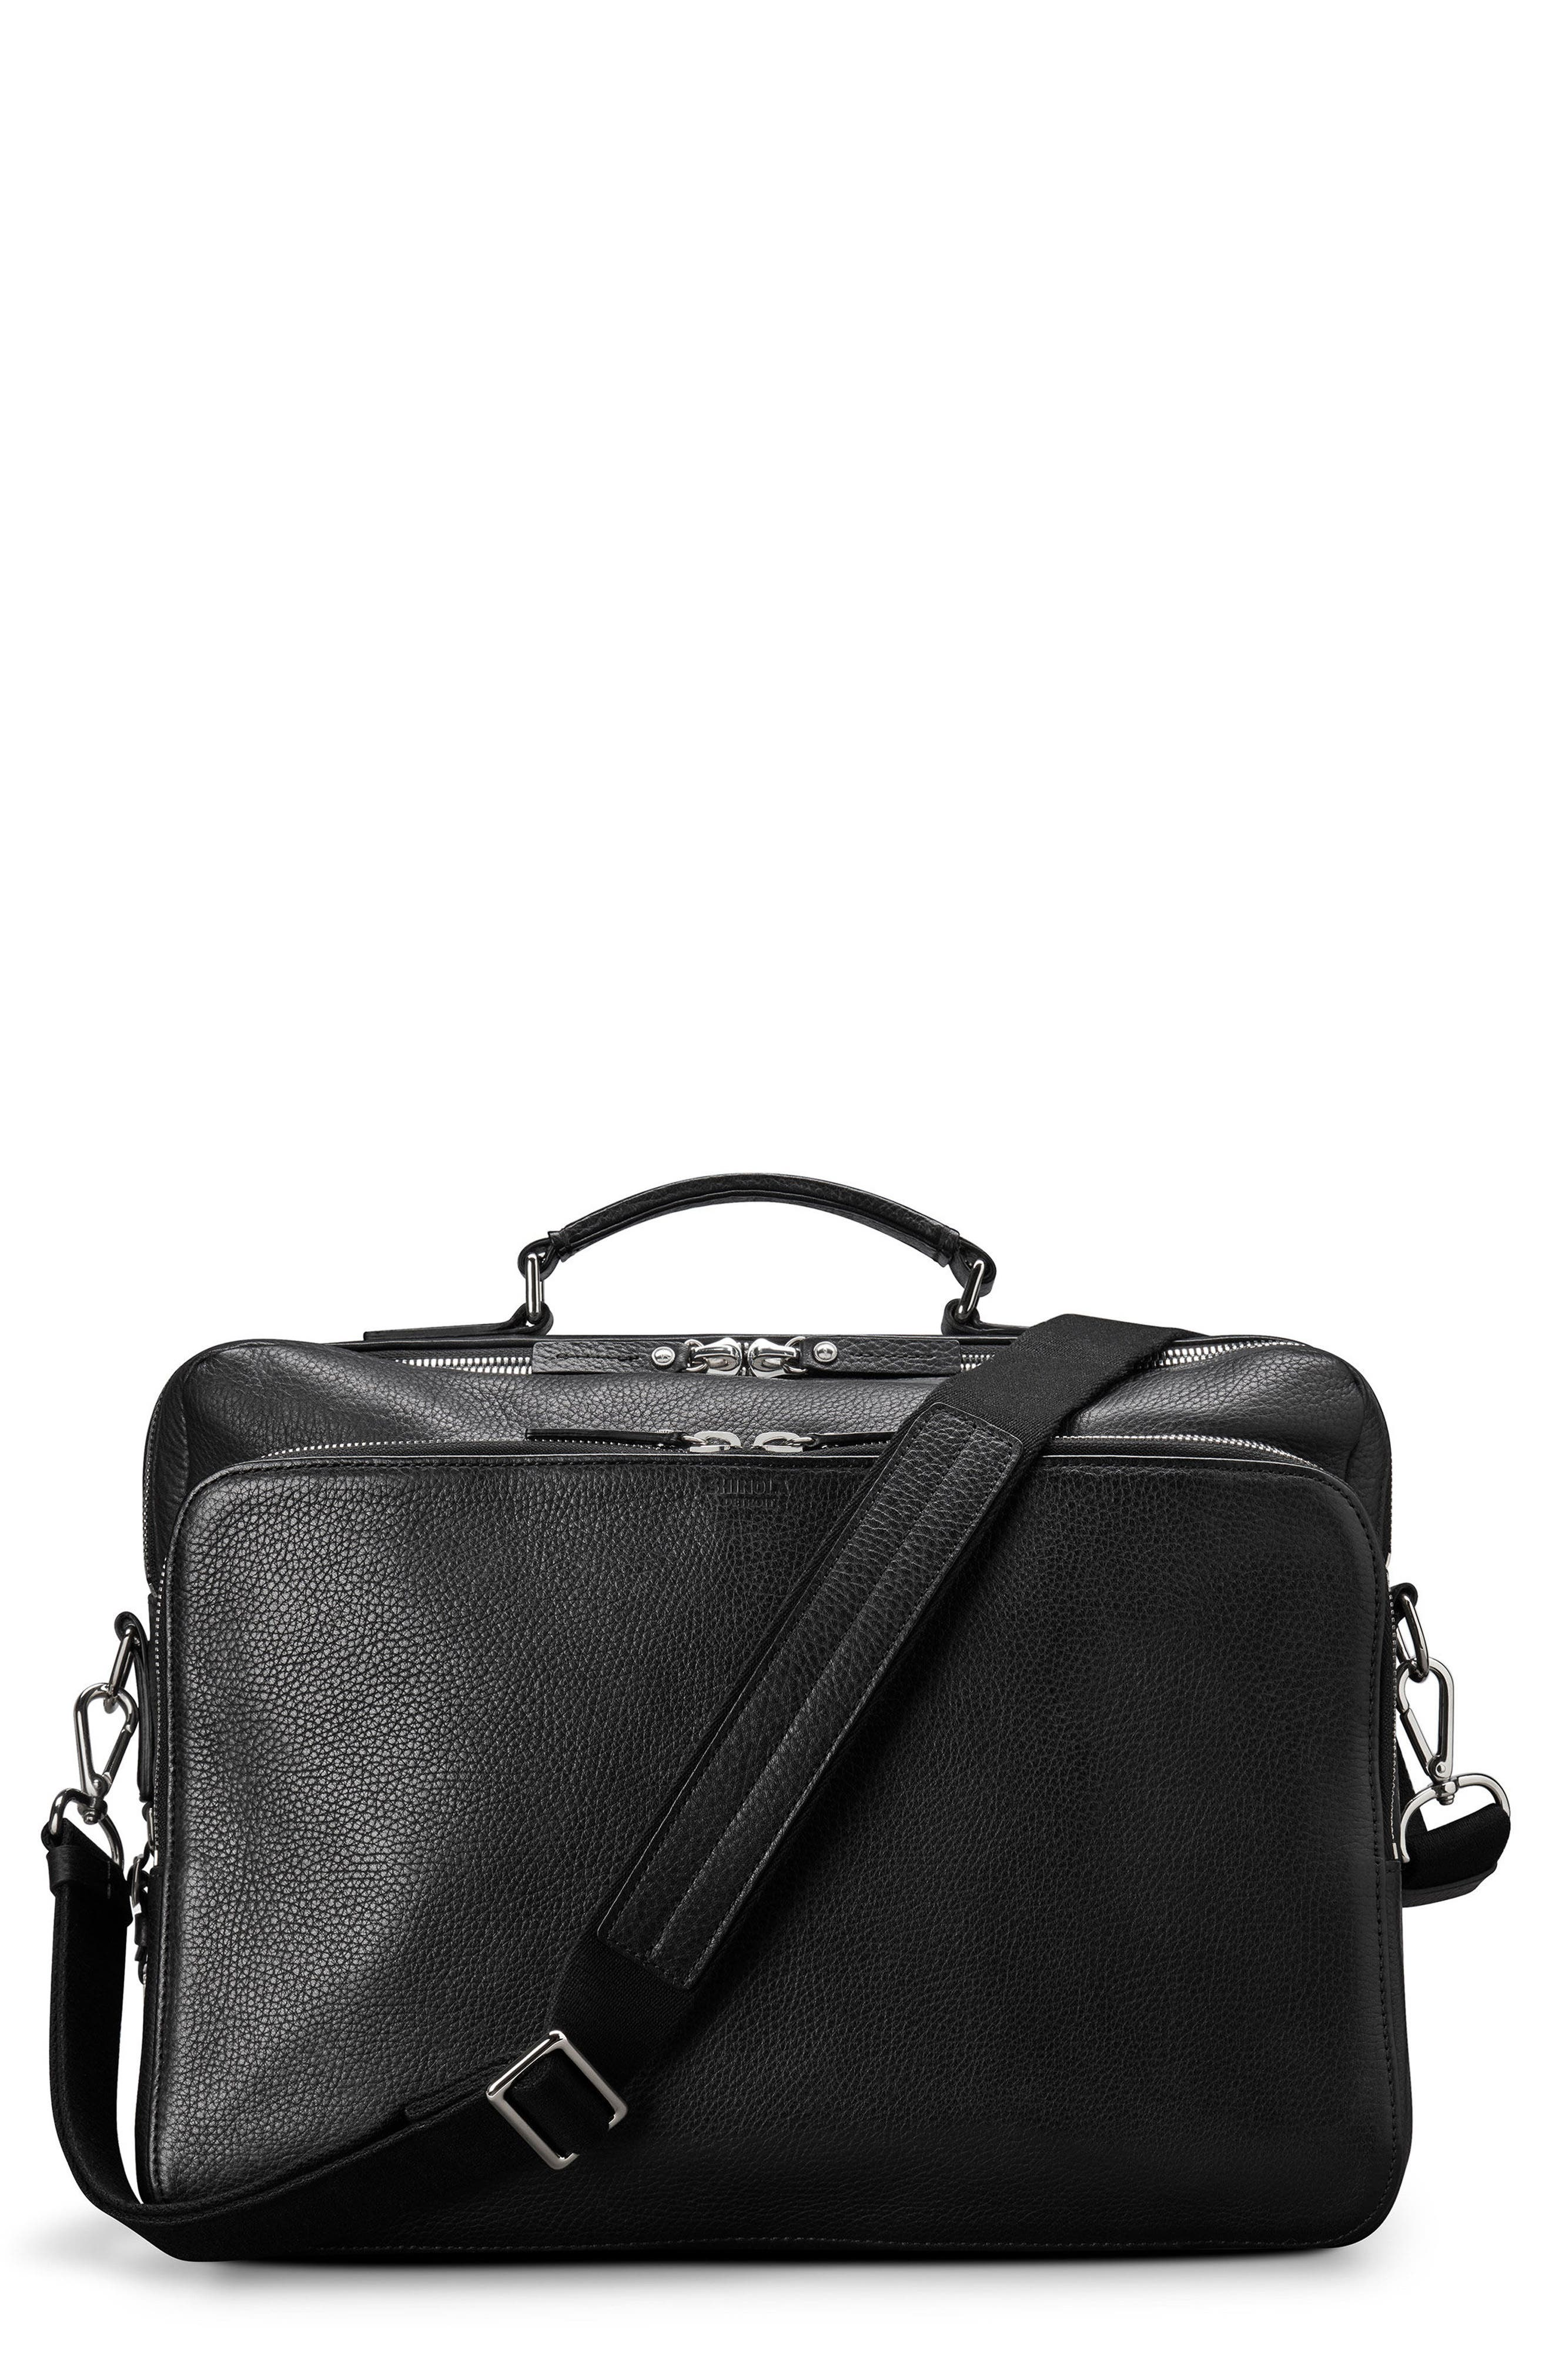 Canfield Briefcase,                             Main thumbnail 1, color,                             Black